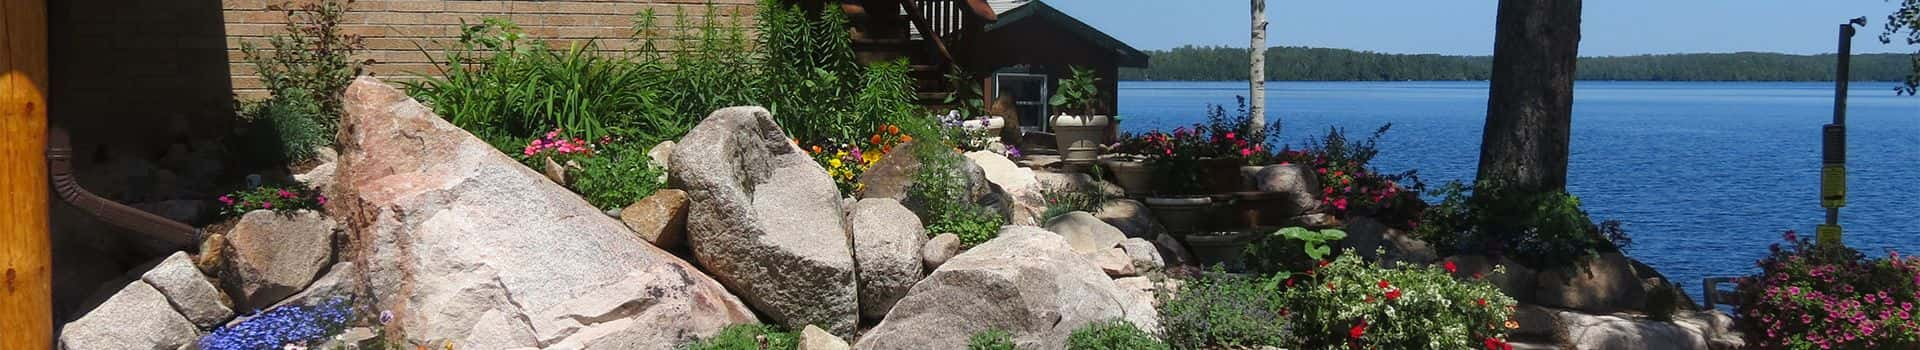 Cabins For Rent in Ely, MN on Lakeside Resort